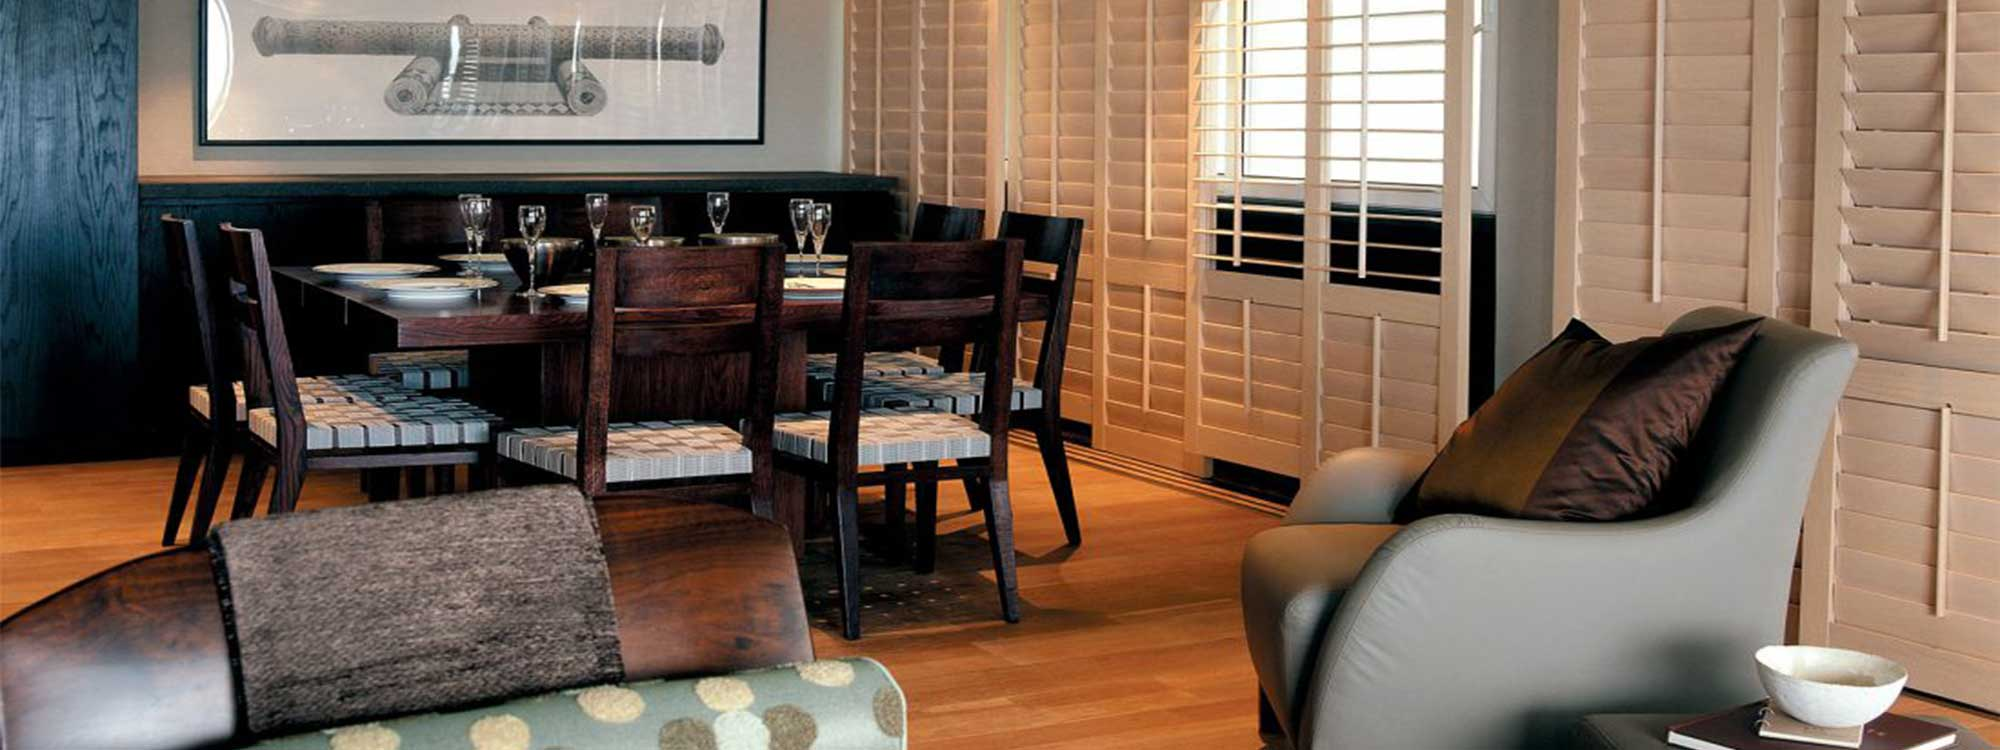 WHITE TEAK SHUTTERS AND BLINDS